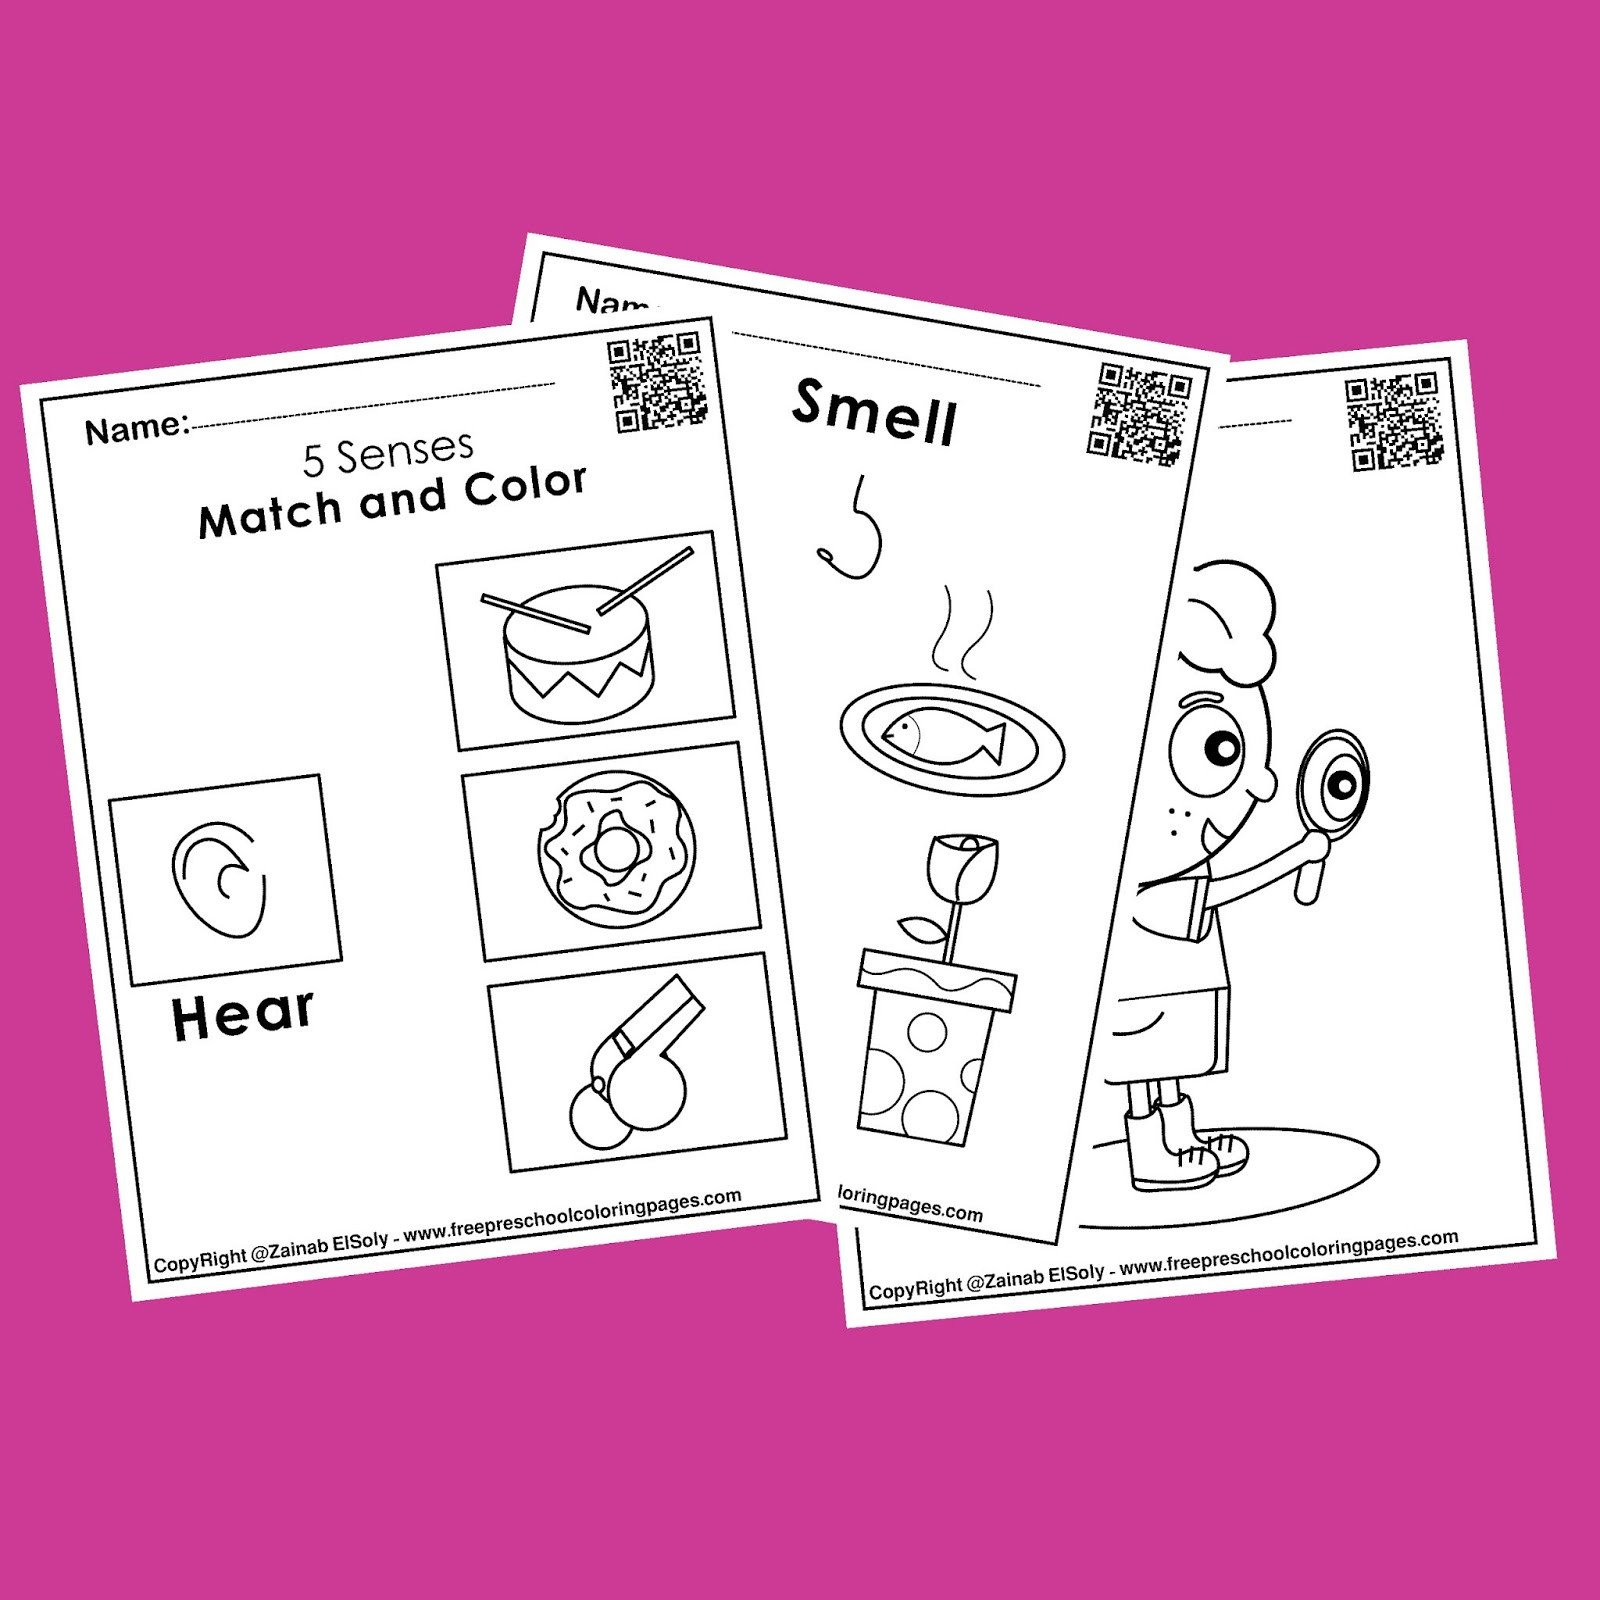 activities for 5 senses preschool coloring pages free printable for kids sight touch taste hear smell match and color 01